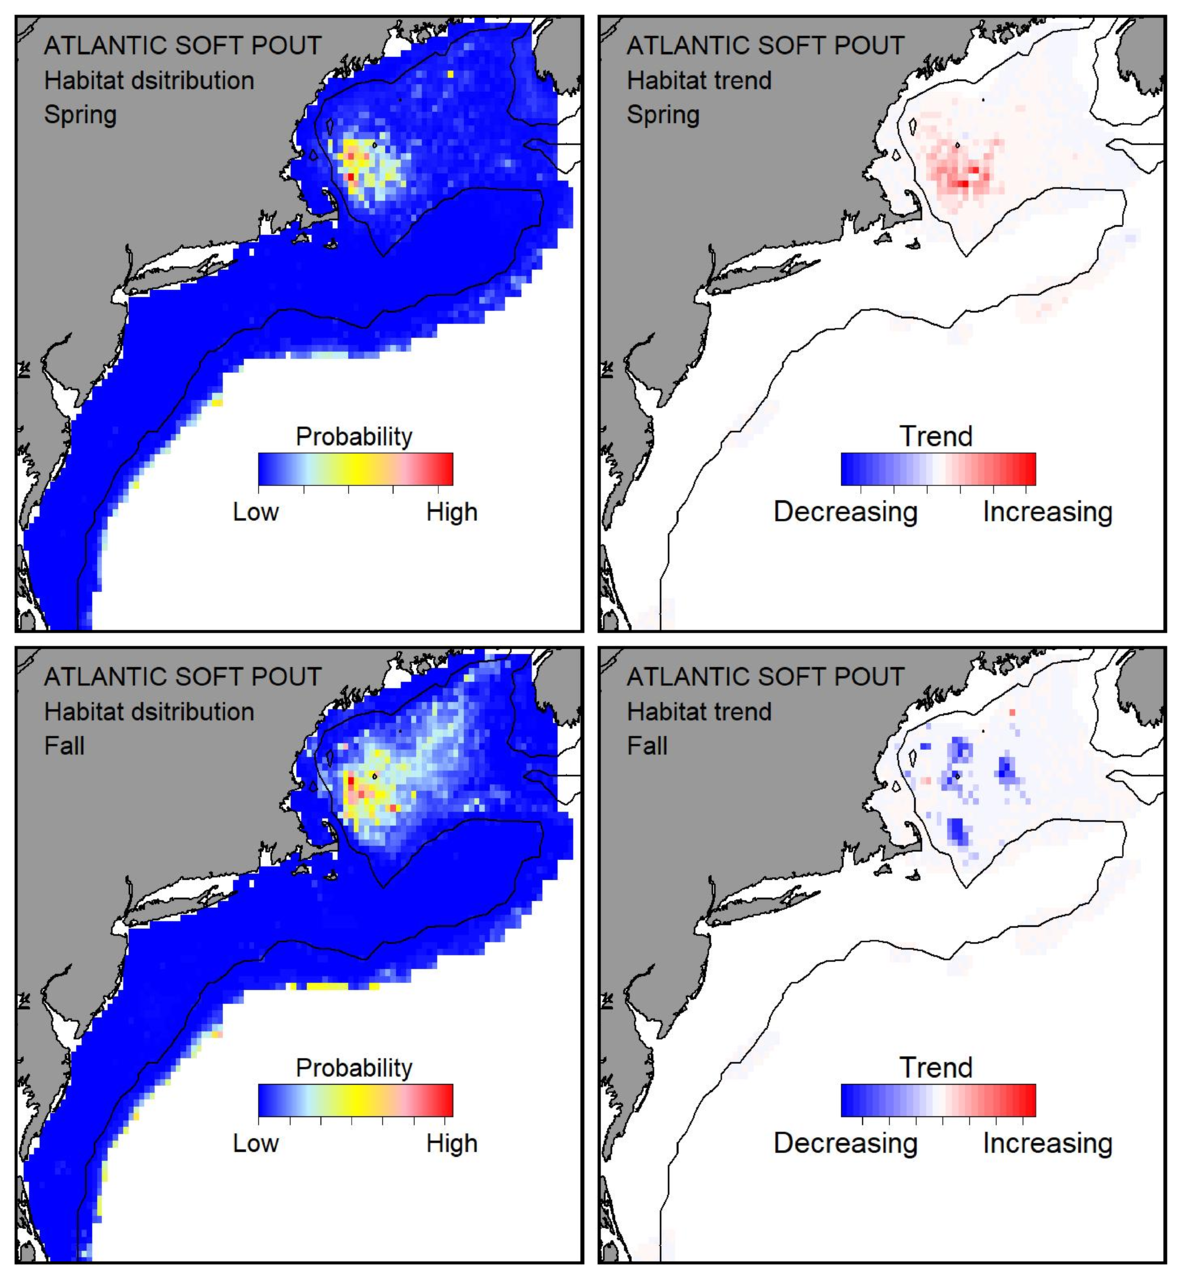 Probable habitat distribution for Atlantic soft pout showing the highest concentration and increasing trend in the Gulf of Maine during the spring. Bottom row: Probable habitat distribution for Atlantic soft pout showing the highest concentration and increasing trend in the Gulf of Maine during the fall.